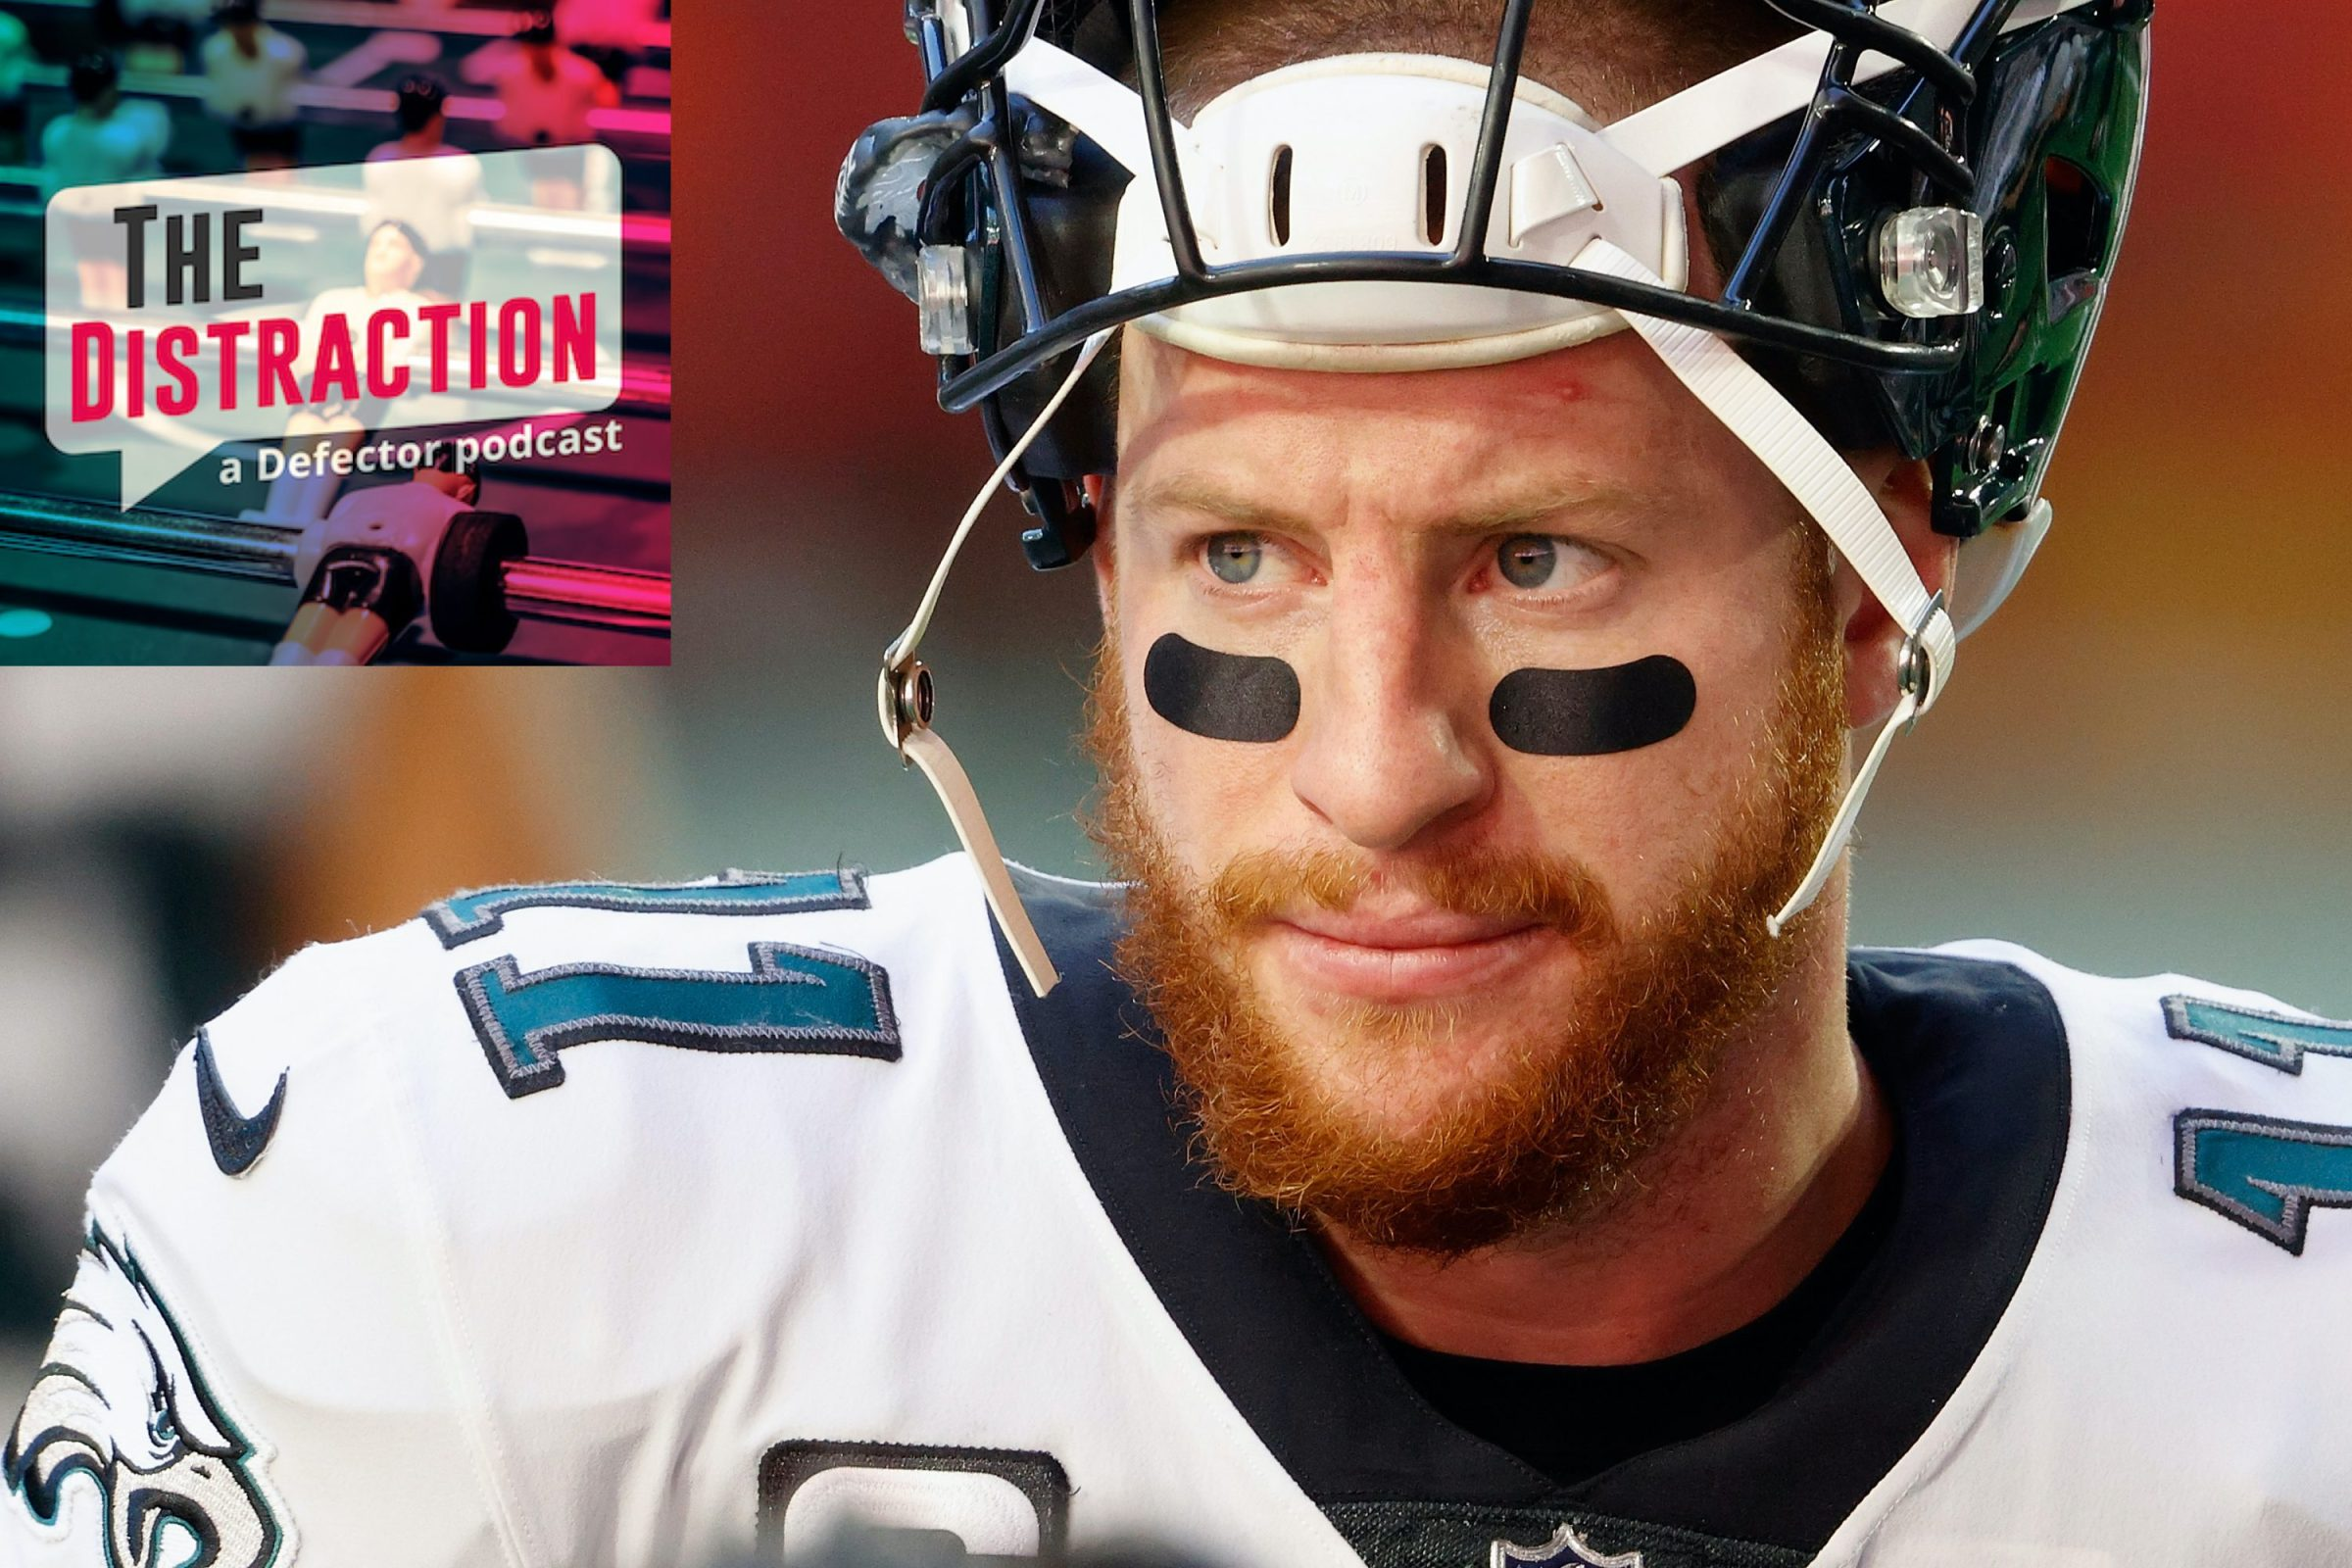 Carson Wentz, seen here warily assessing The Distraction logo.